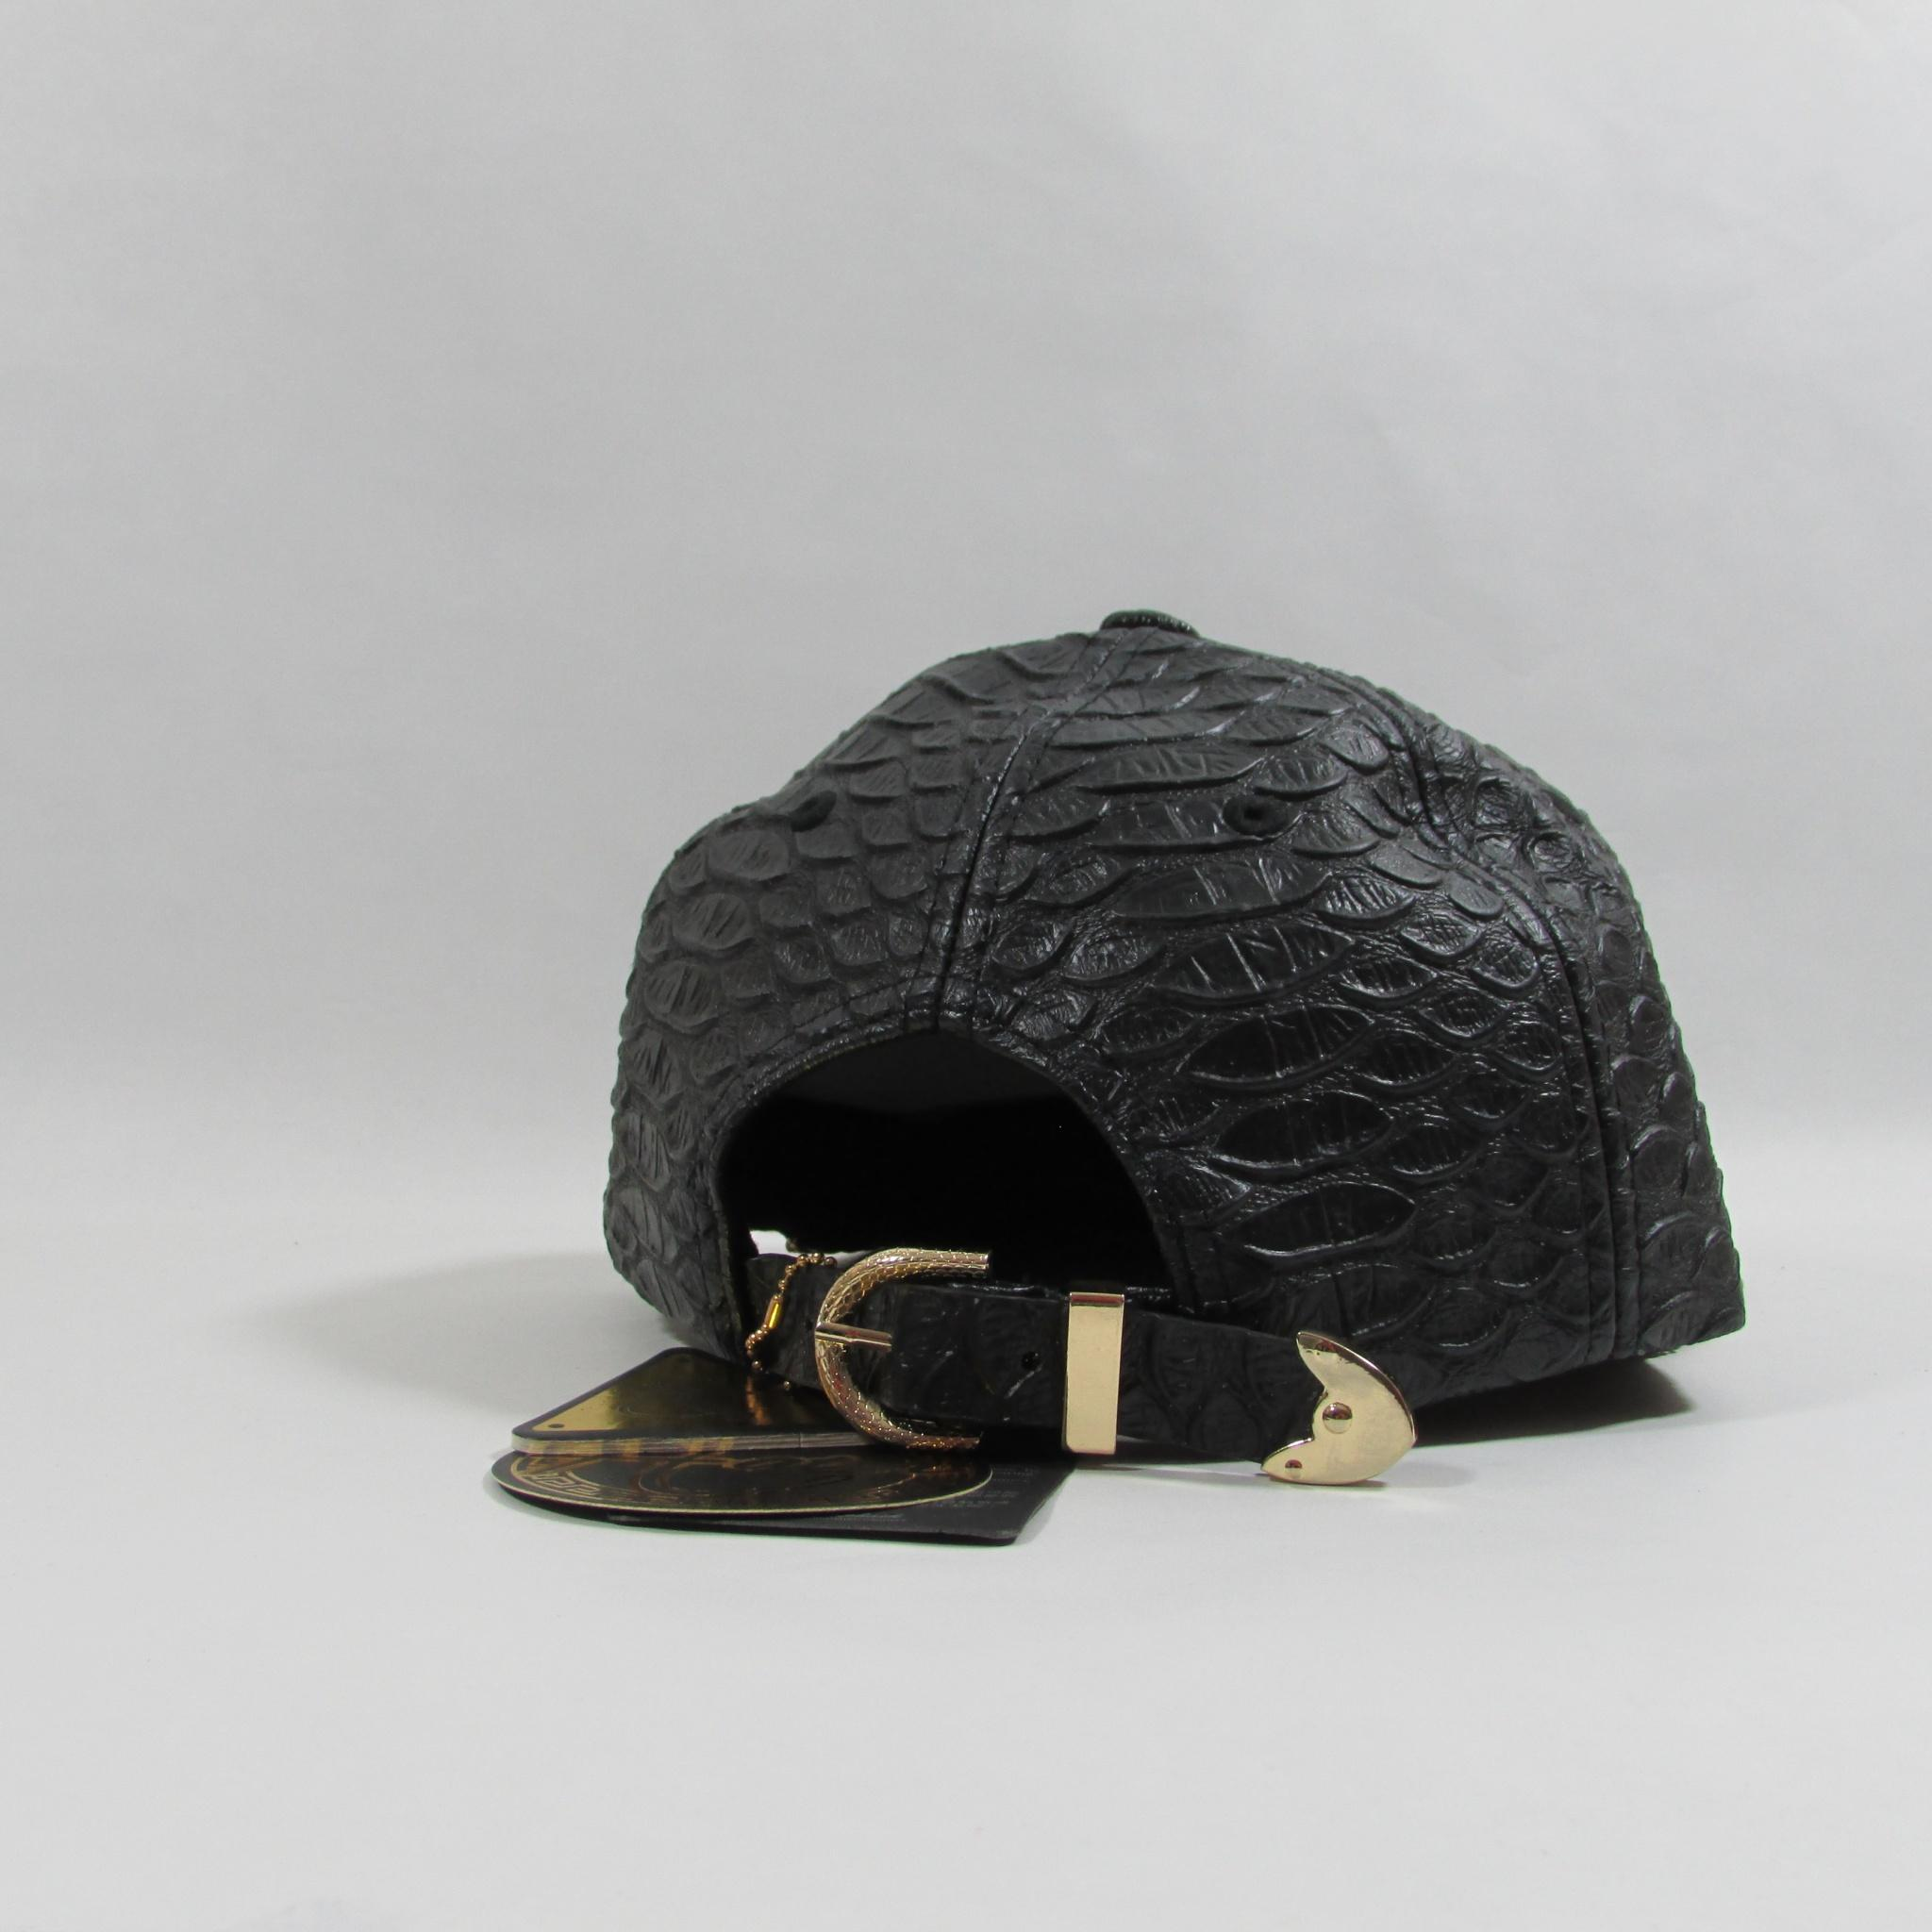 Hater Hardware LDN X Genuine Leather Strapback Hat Gold Chain